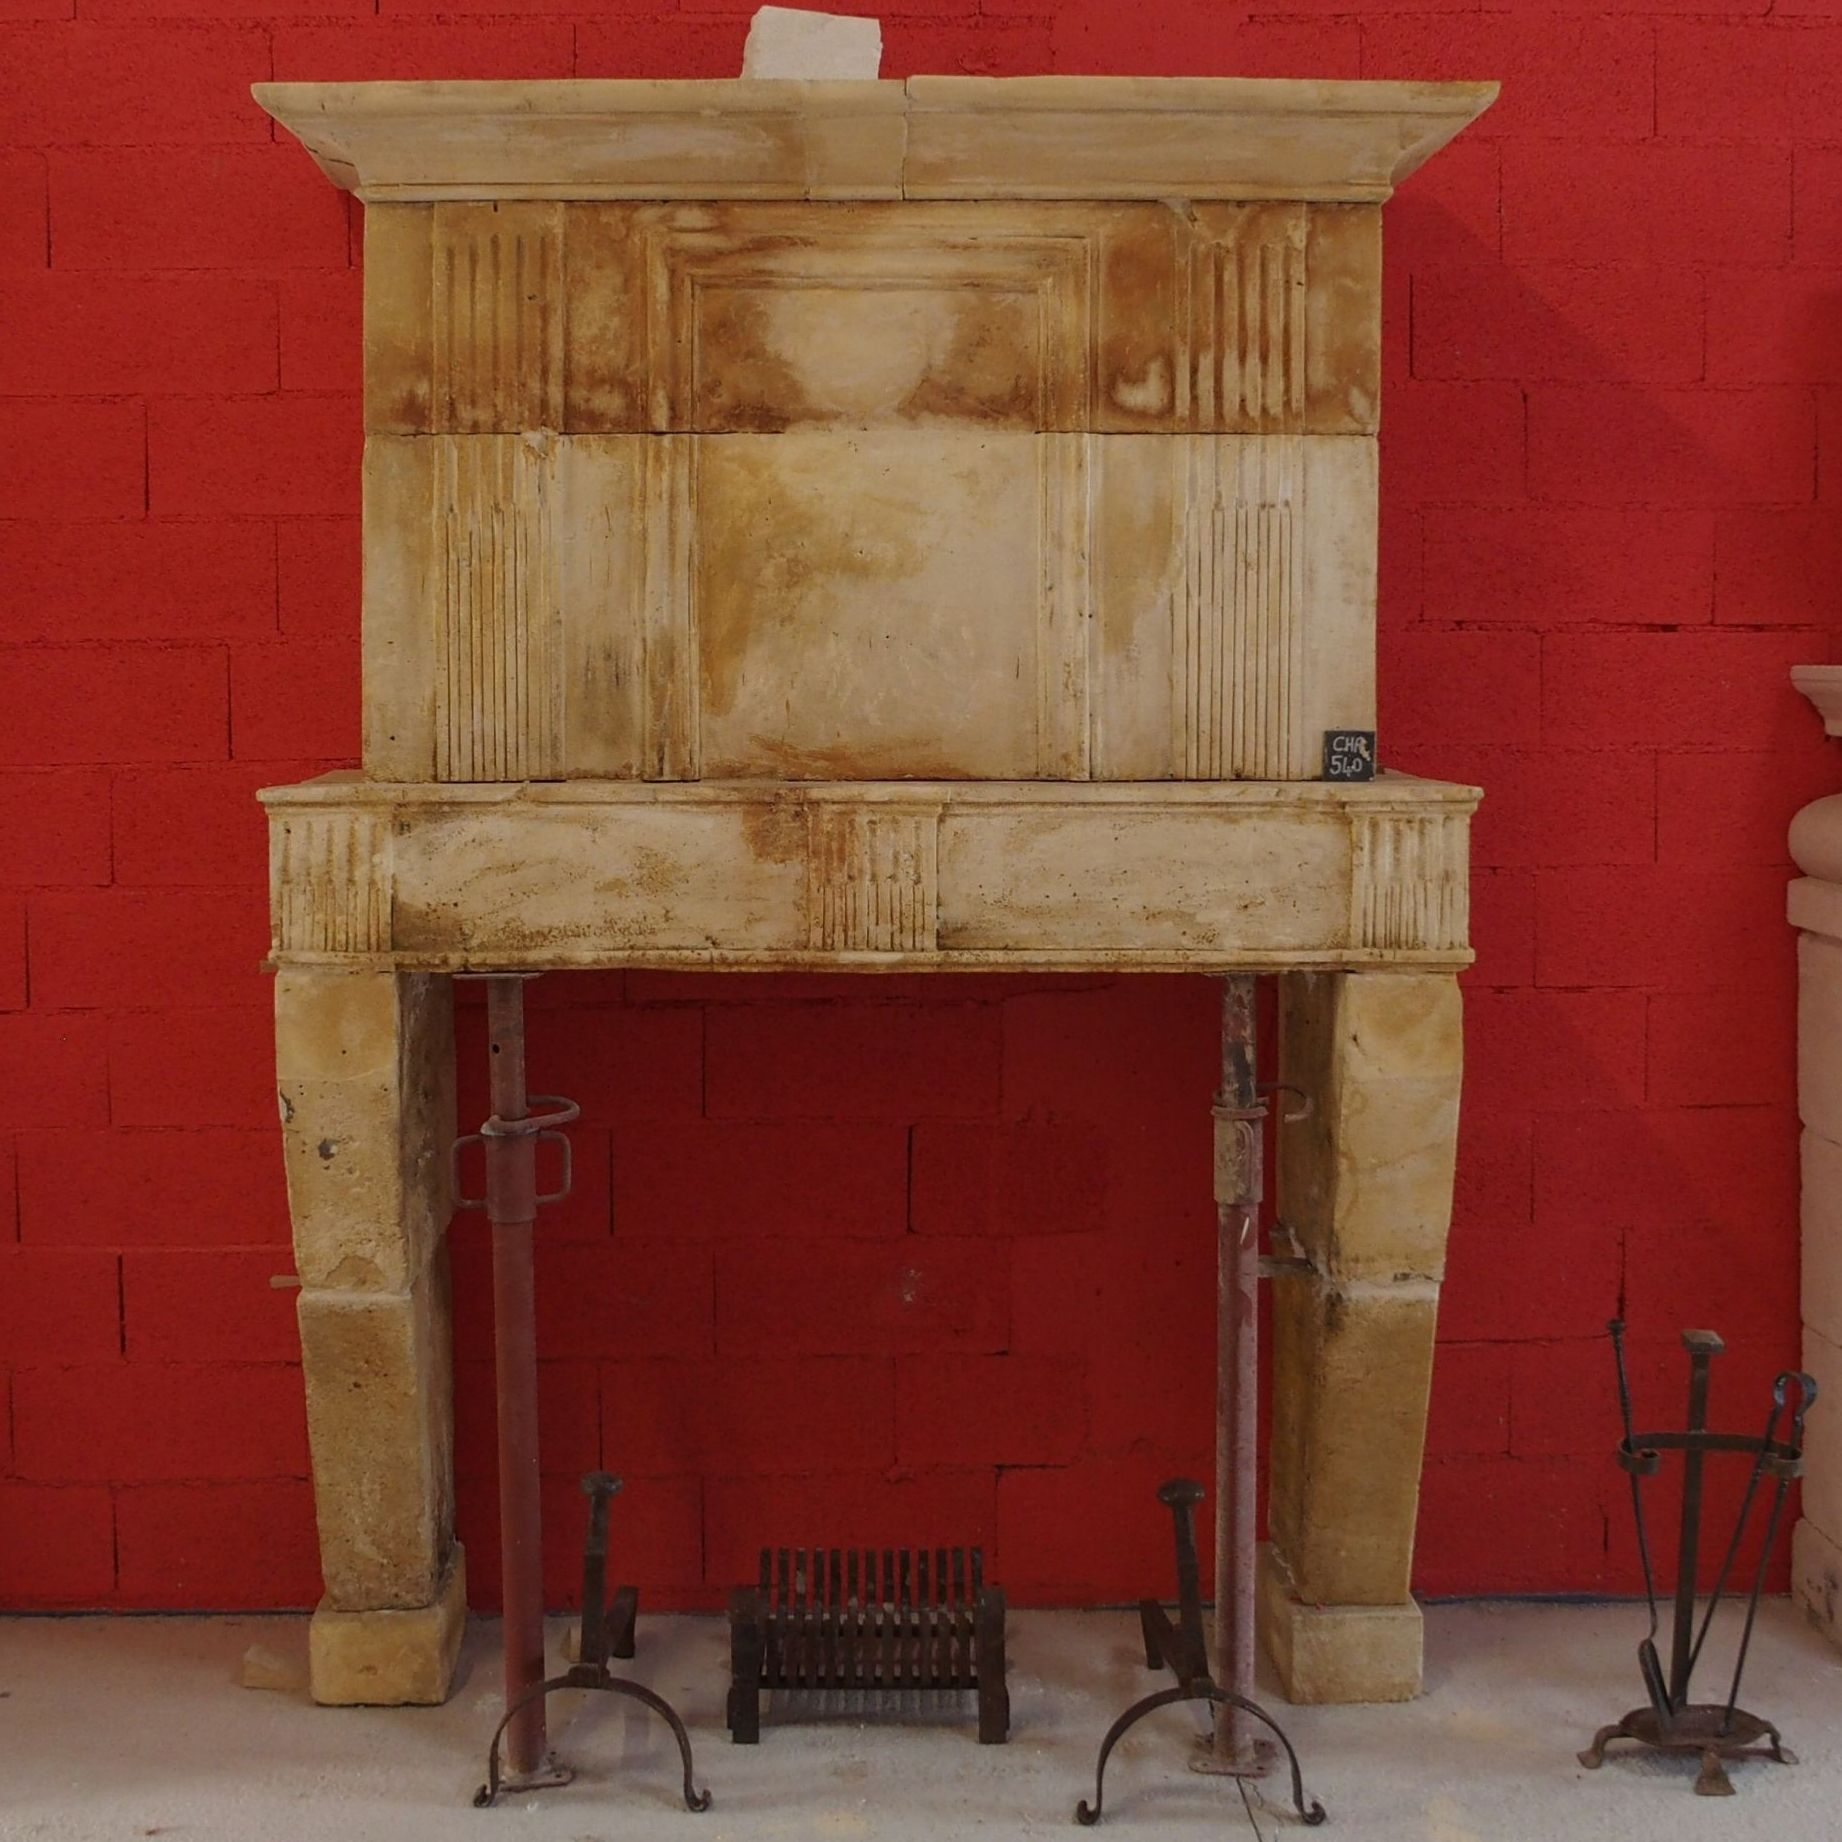 Old stone fireplace with an exceptional cachet - Louis XVI. fireplace with overmantle.